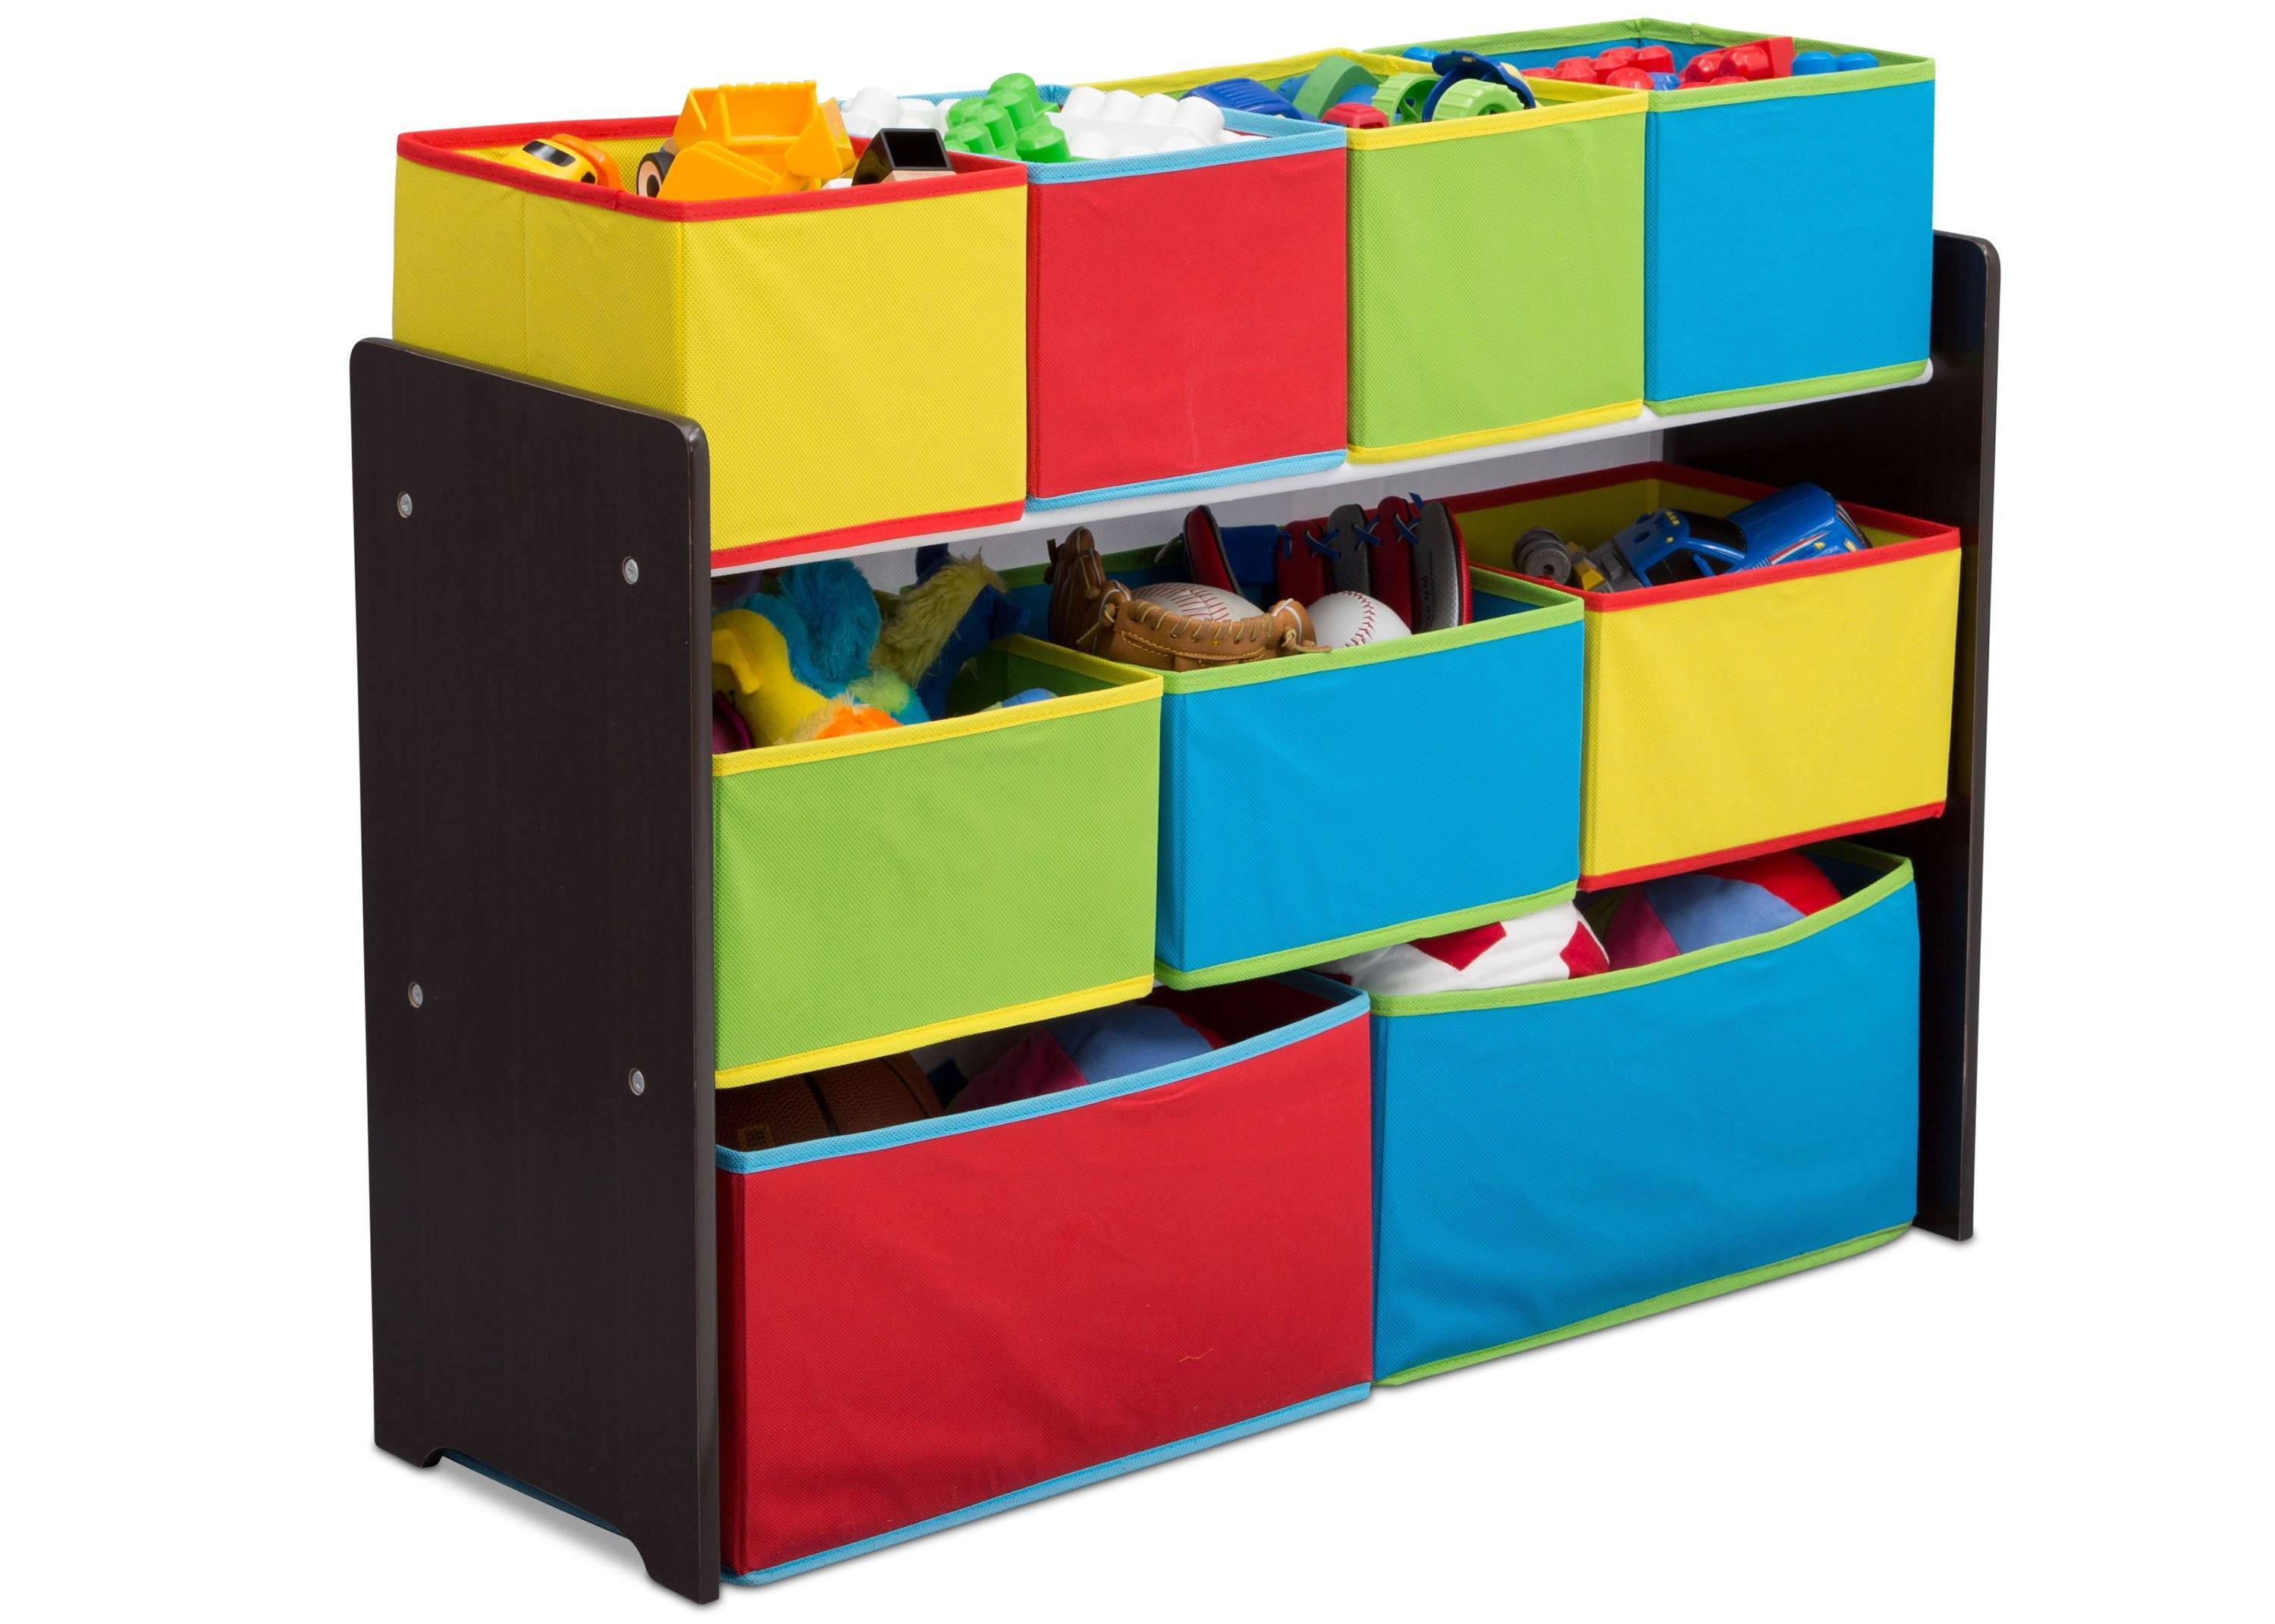 Delta Children Deluxe Multi-Bin Toy Organizer with Storage Bins Dark Chocolate/Primary ...  sc 1 st  Delta Children & Deluxe Multi-Bin Toy Organizer with Storage Bins Dark Chocolate ...